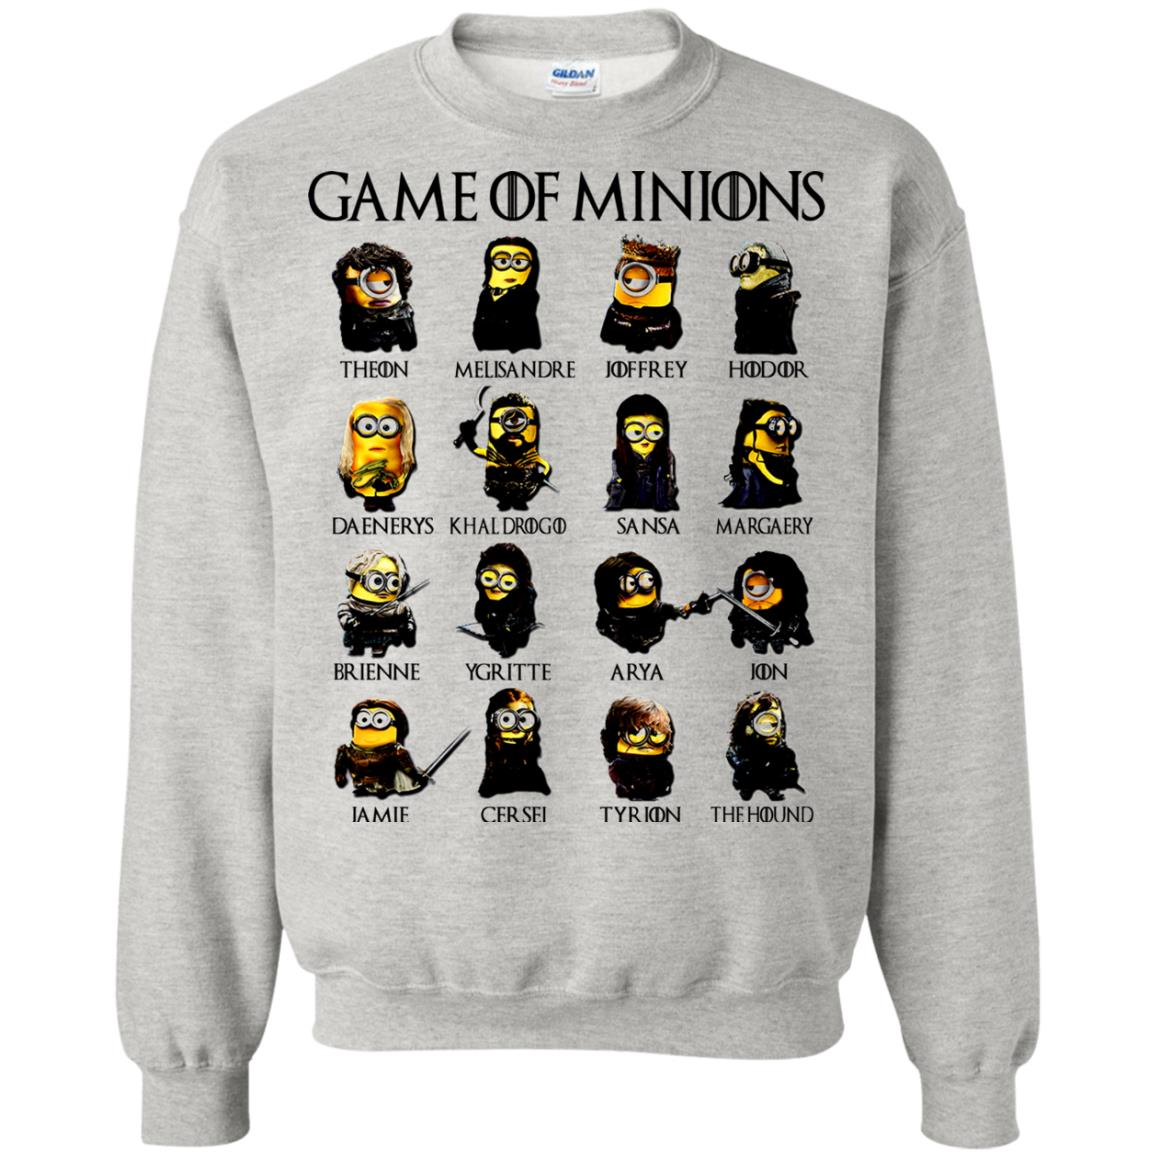 image 94 - Game of Thrones: Game of Minions t-shirt